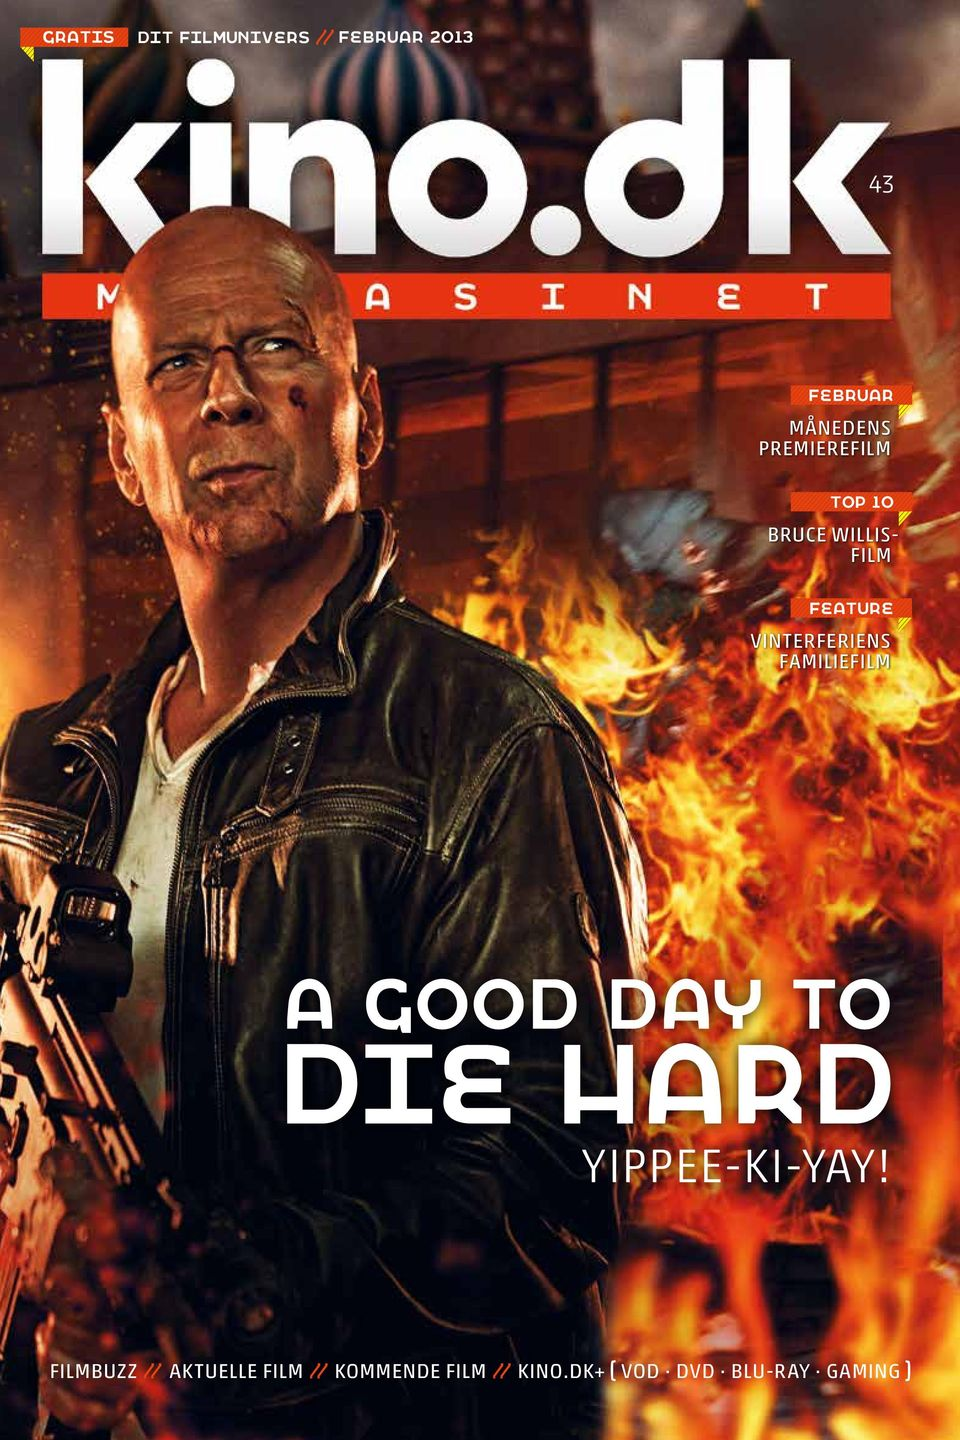 familiefilm A GOOD DAY TO DIE HARD Yippee-ki-yay!